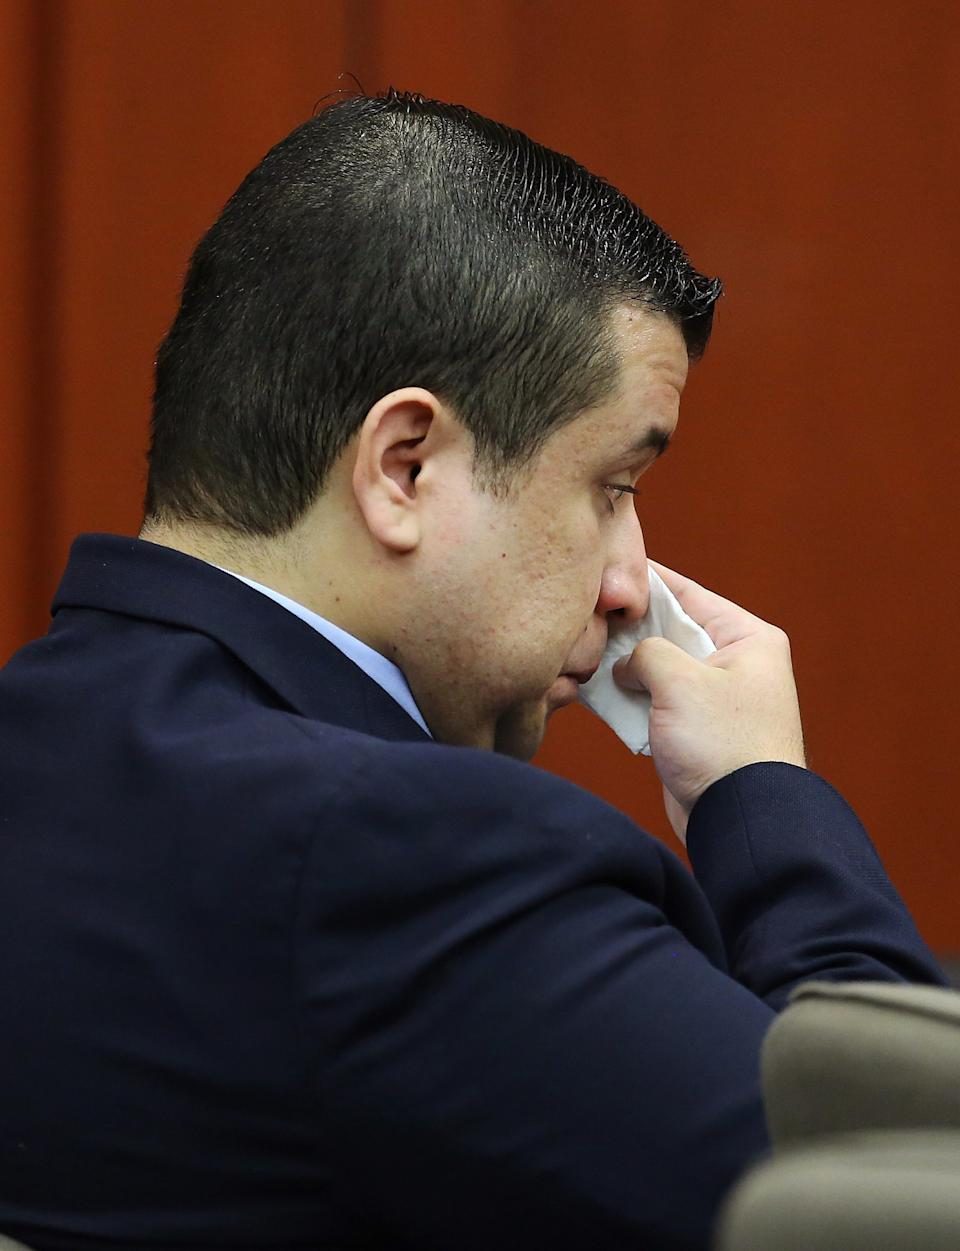 George Zimmerman wipes his face after arriving in the courtroom during his trial at the Seminole County Criminal Justice Center, in Sanford, Fla., Friday, July 12, 2013. Zimmerman is charged in the 2012 shooting death of unarmed teenager Trayvon Martin. (AP Photo/Orlando Sentinel, Joe Burbank, Pool)